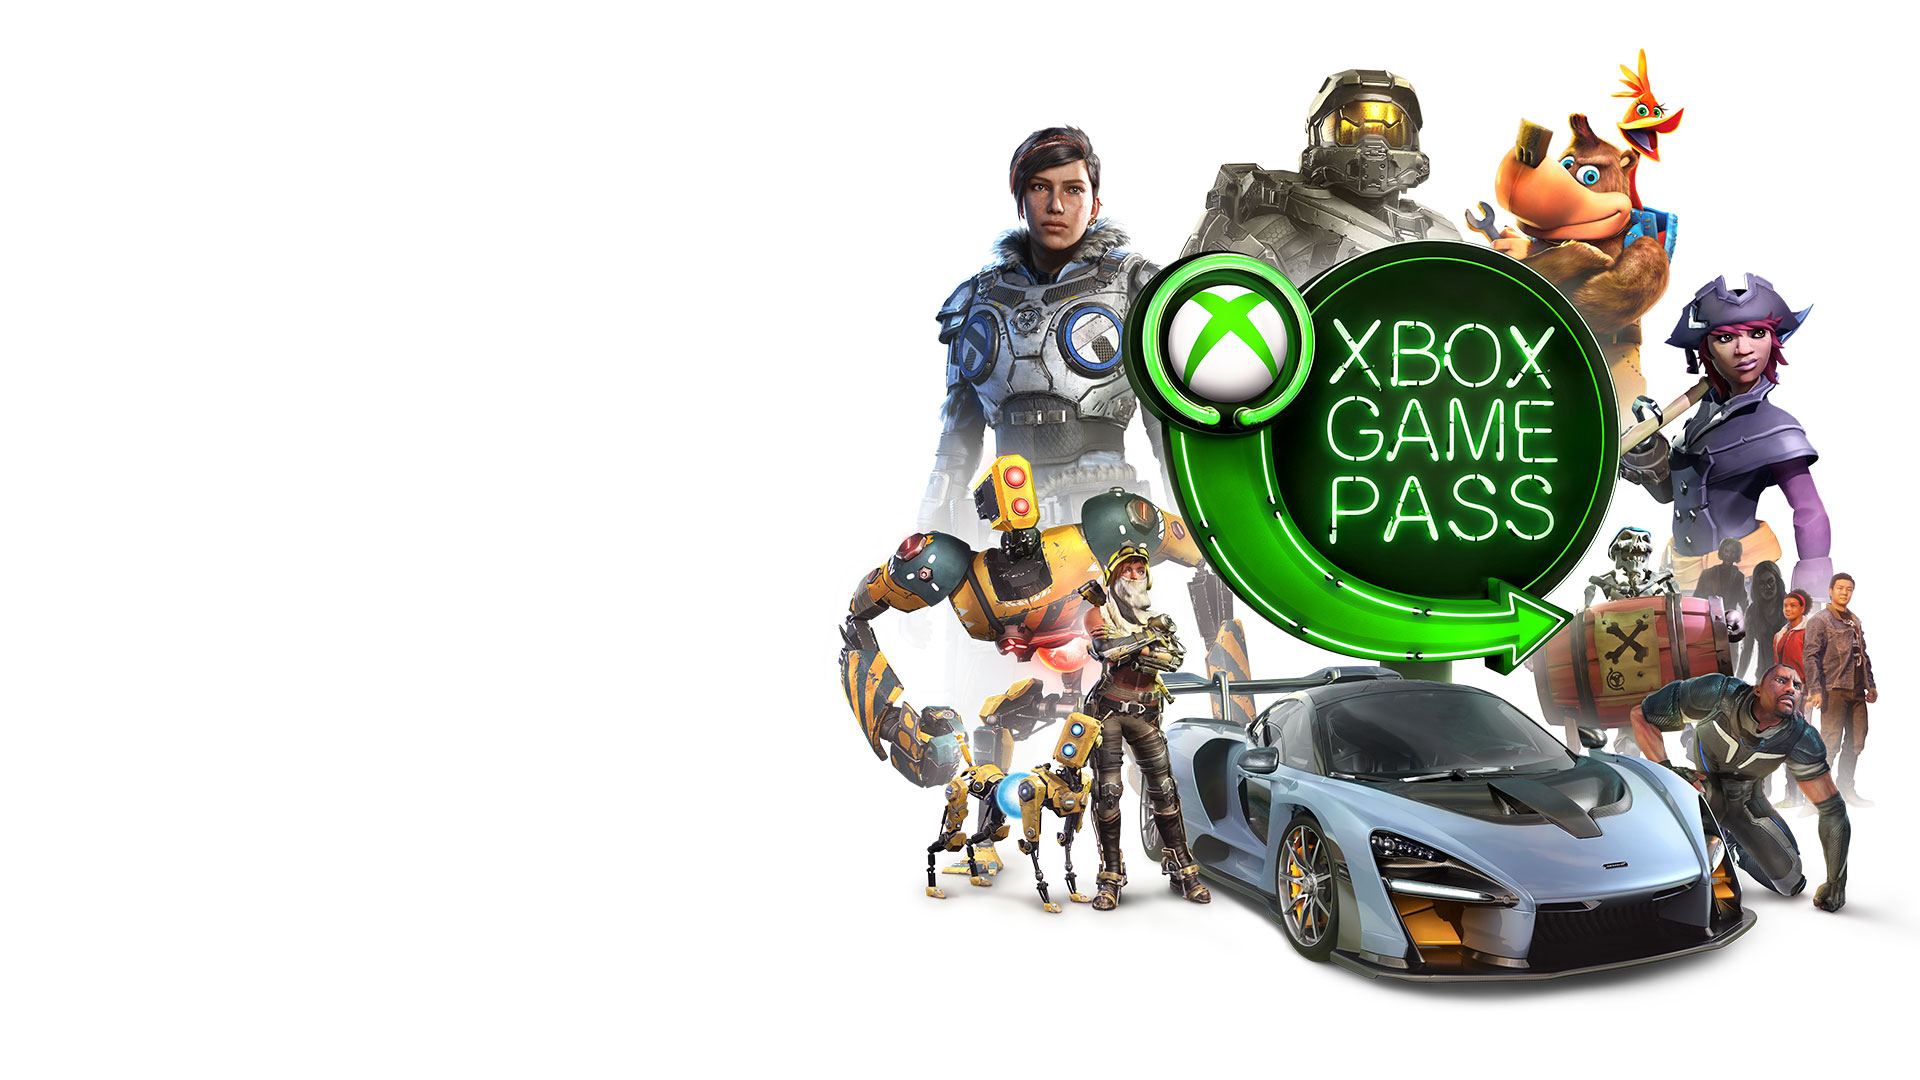 Xbox Game Pass logo surrounded by Xbox characters such as Master Chief, Banjo and Kazooie, Sea of Thieves Pirates and Recore characters